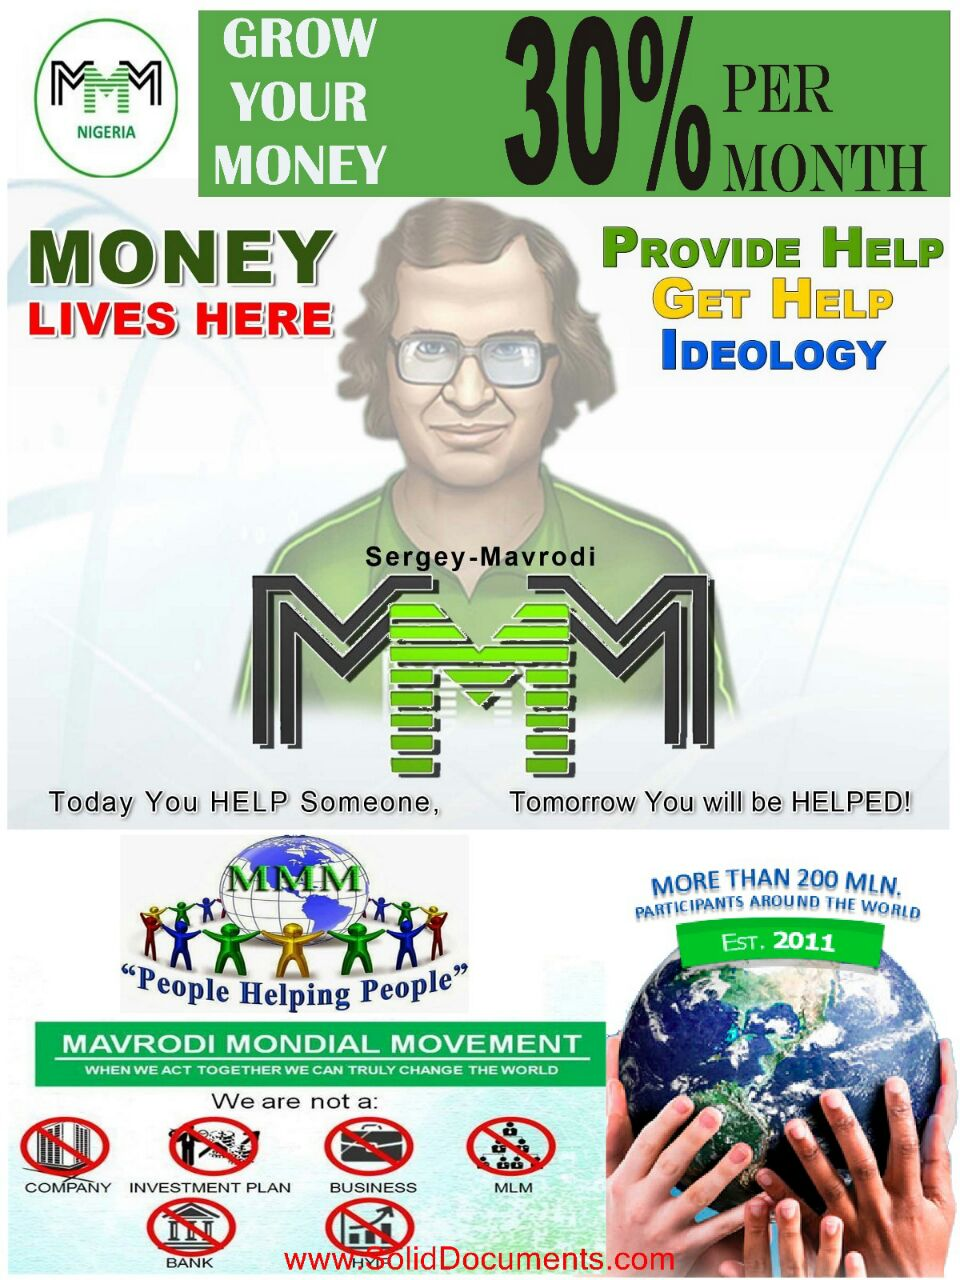 FINANCIAL FREEDOM (CLICK BANNER)